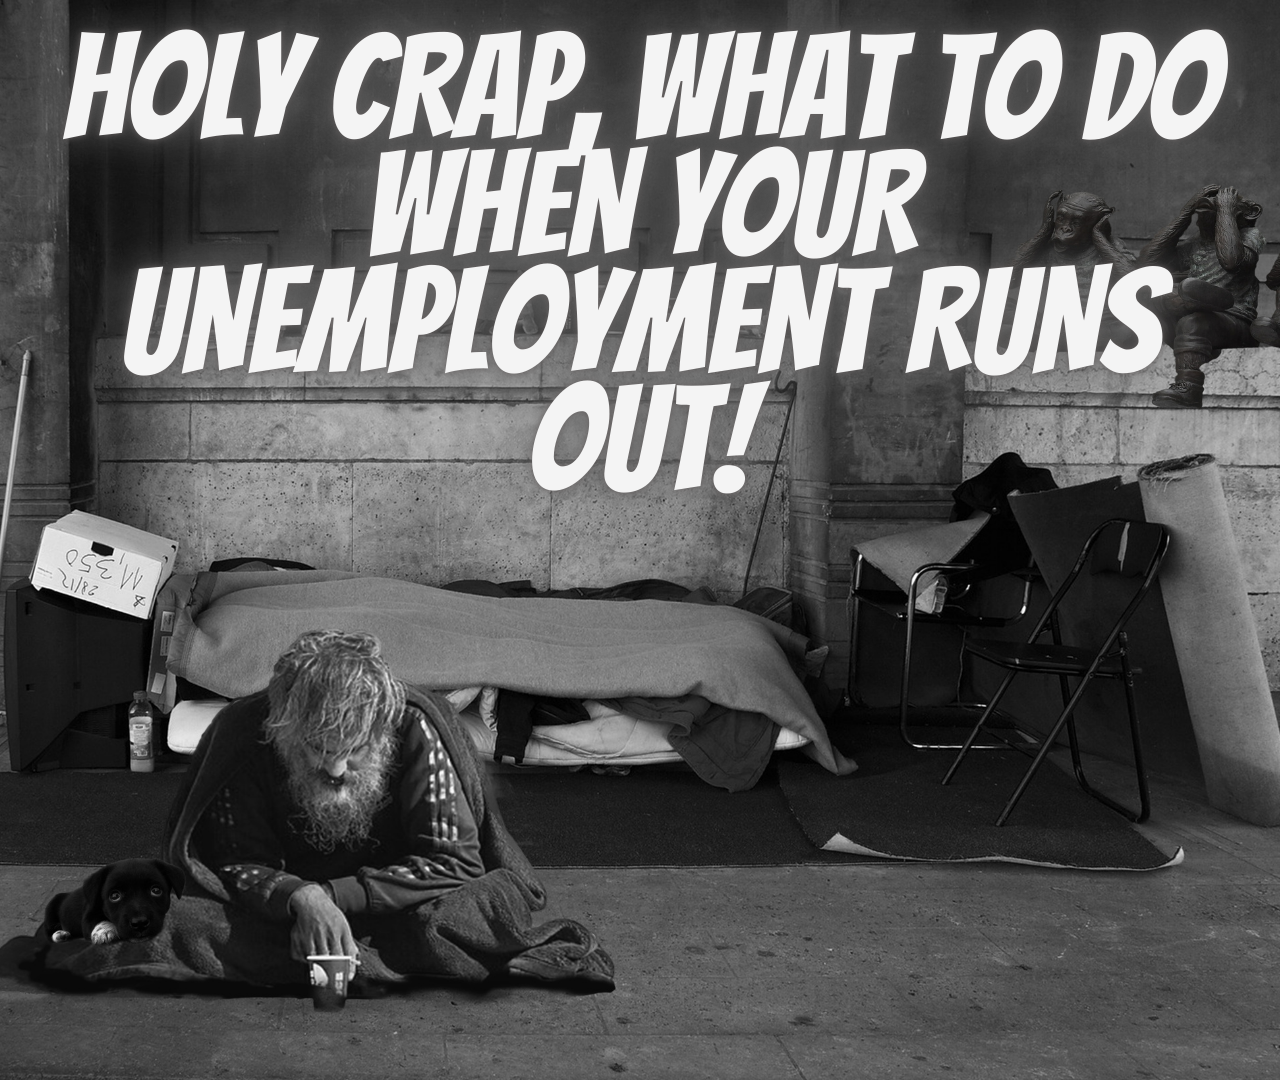 unemployment, unemployment runs out, unemployment benefits run out, ideas to make money once your unemployment benefits run out